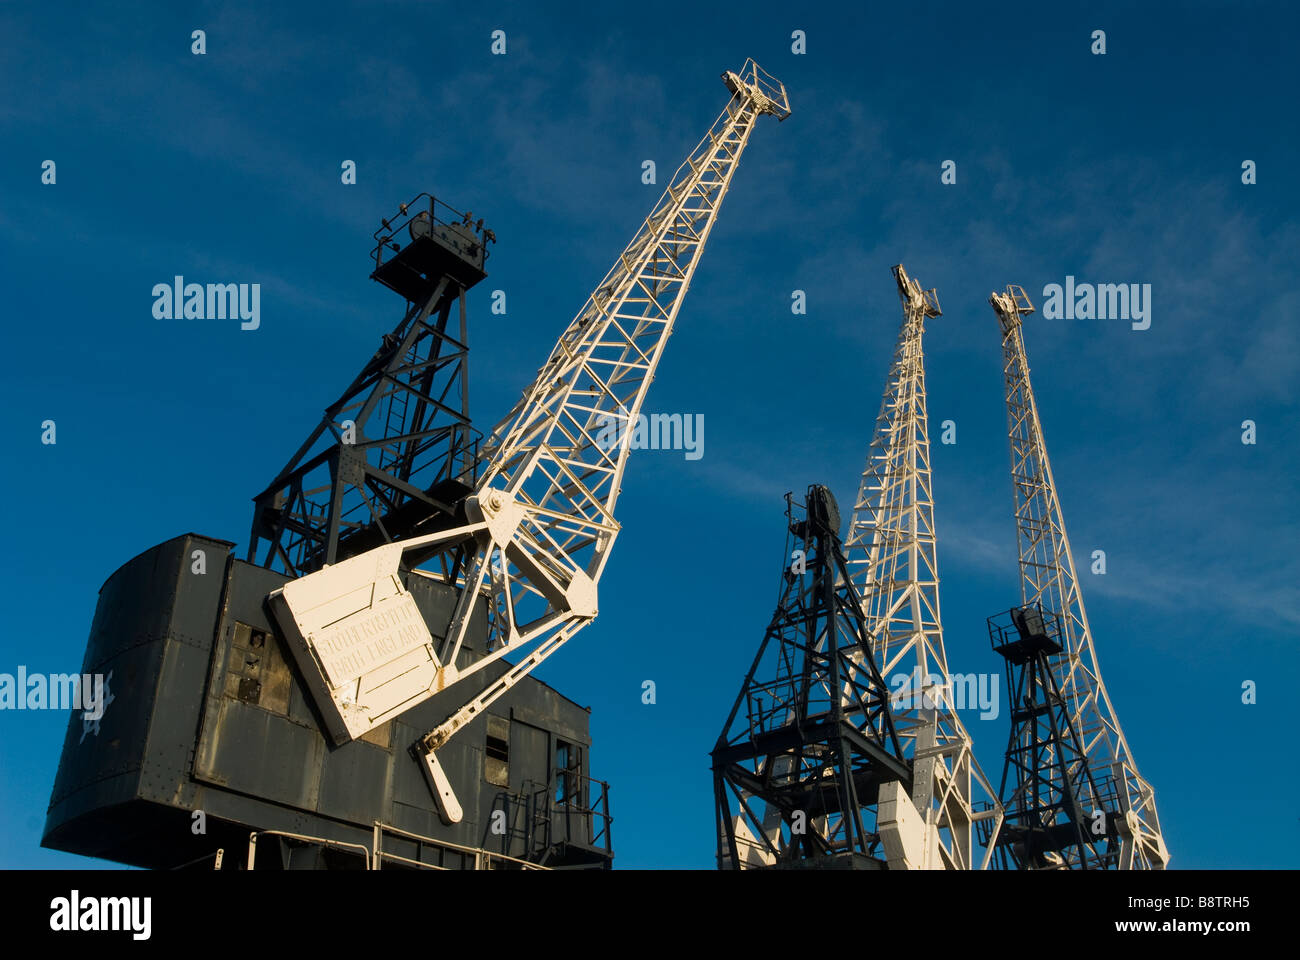 photograph of three cranes against blue sky - Stock Image